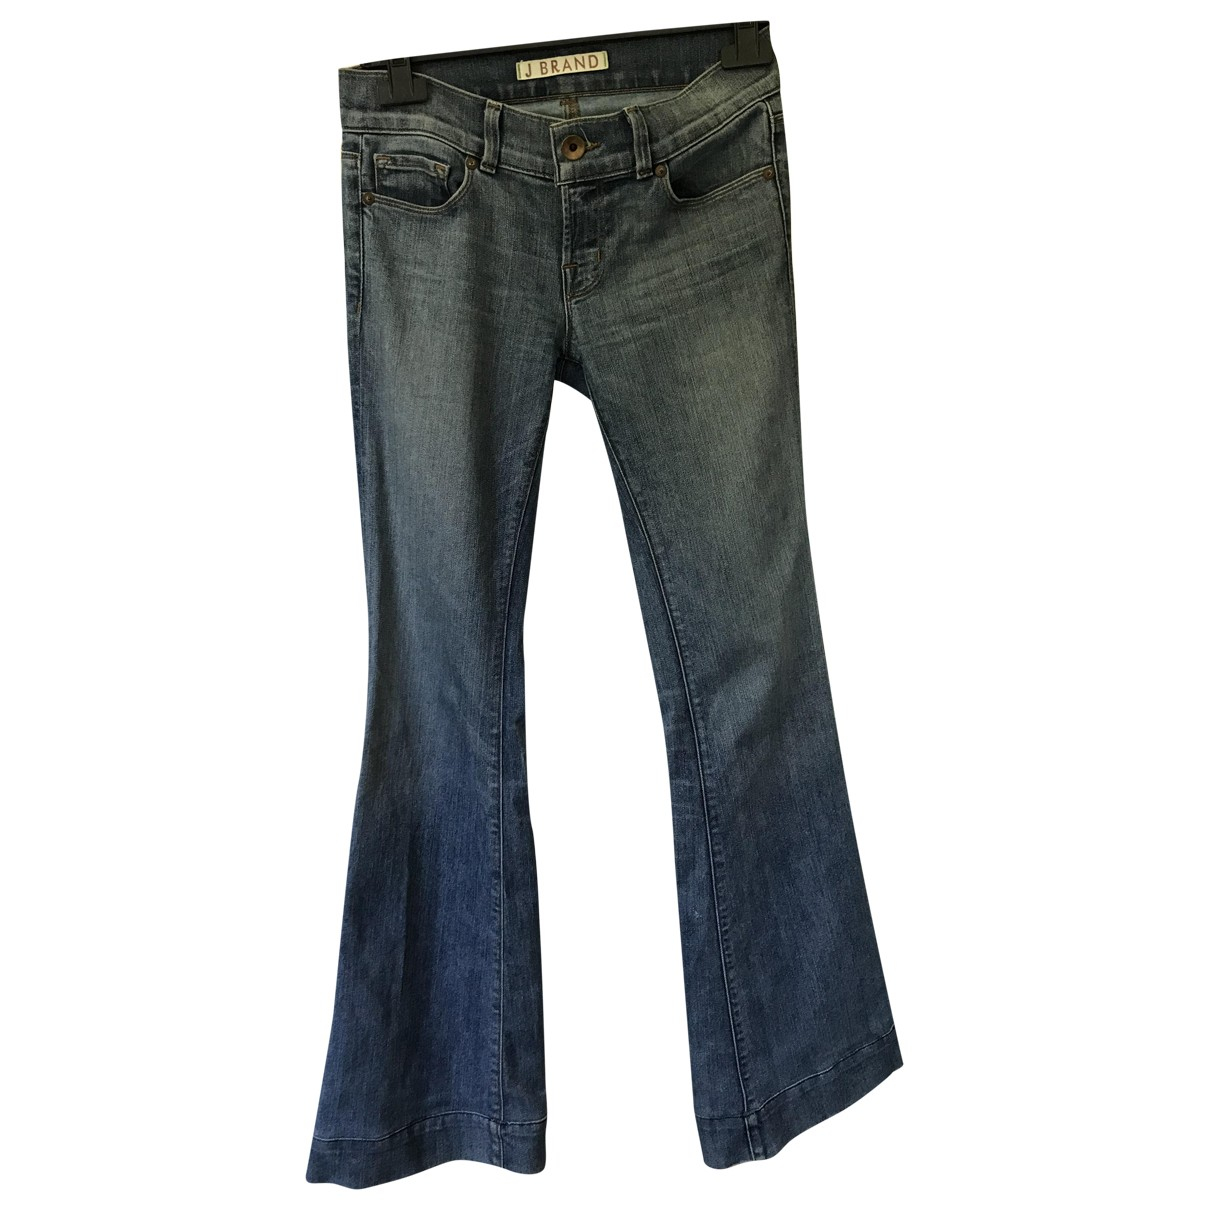 J Brand \N Navy Denim - Jeans Jeans for Women 26 US